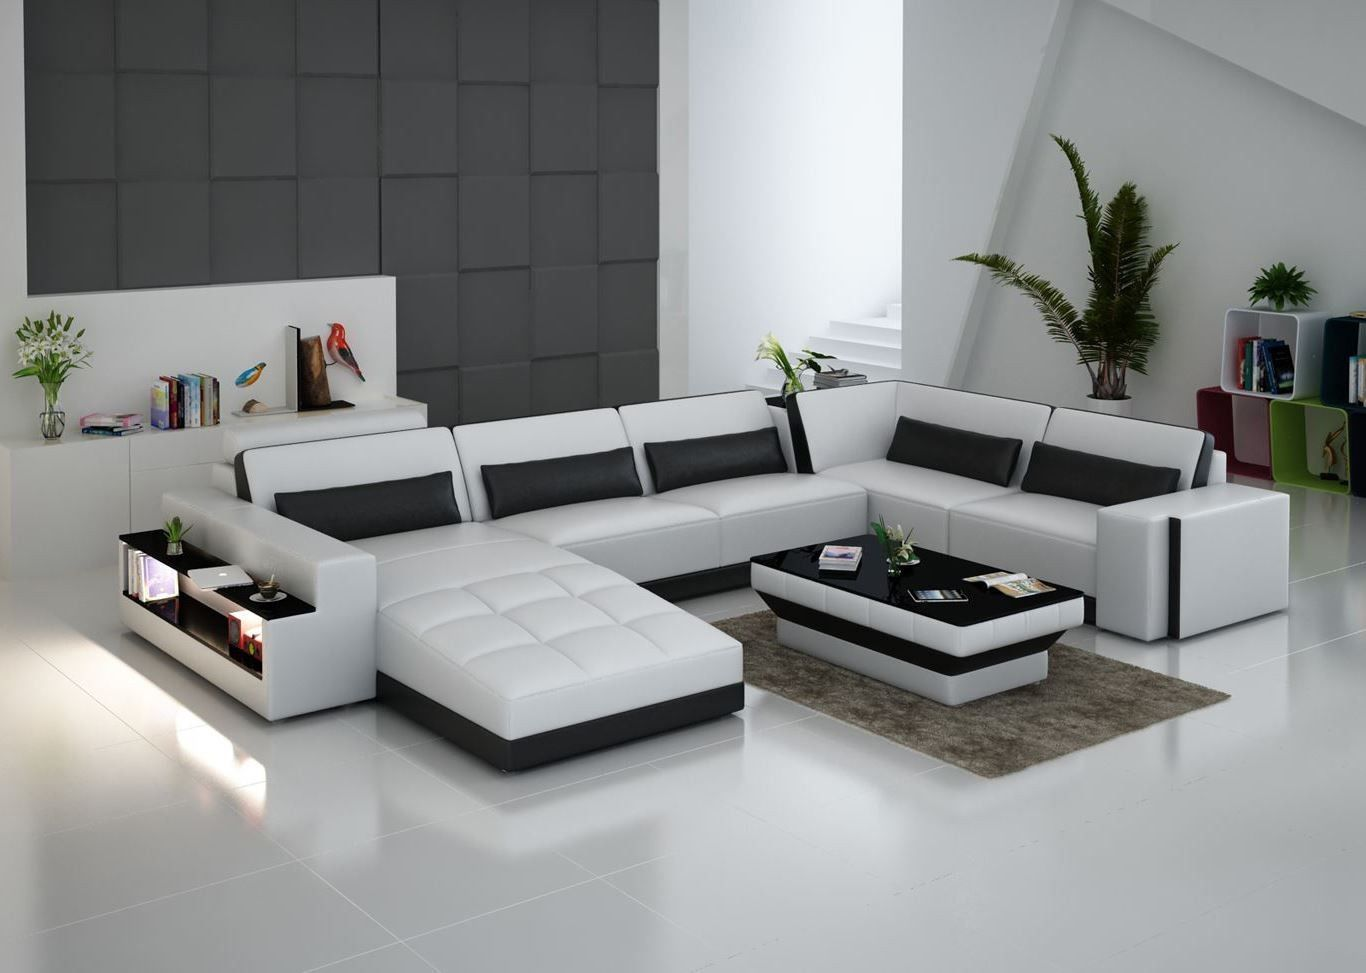 wonderful traditional sectional sofas decoration-Modern Traditional Sectional sofas Image